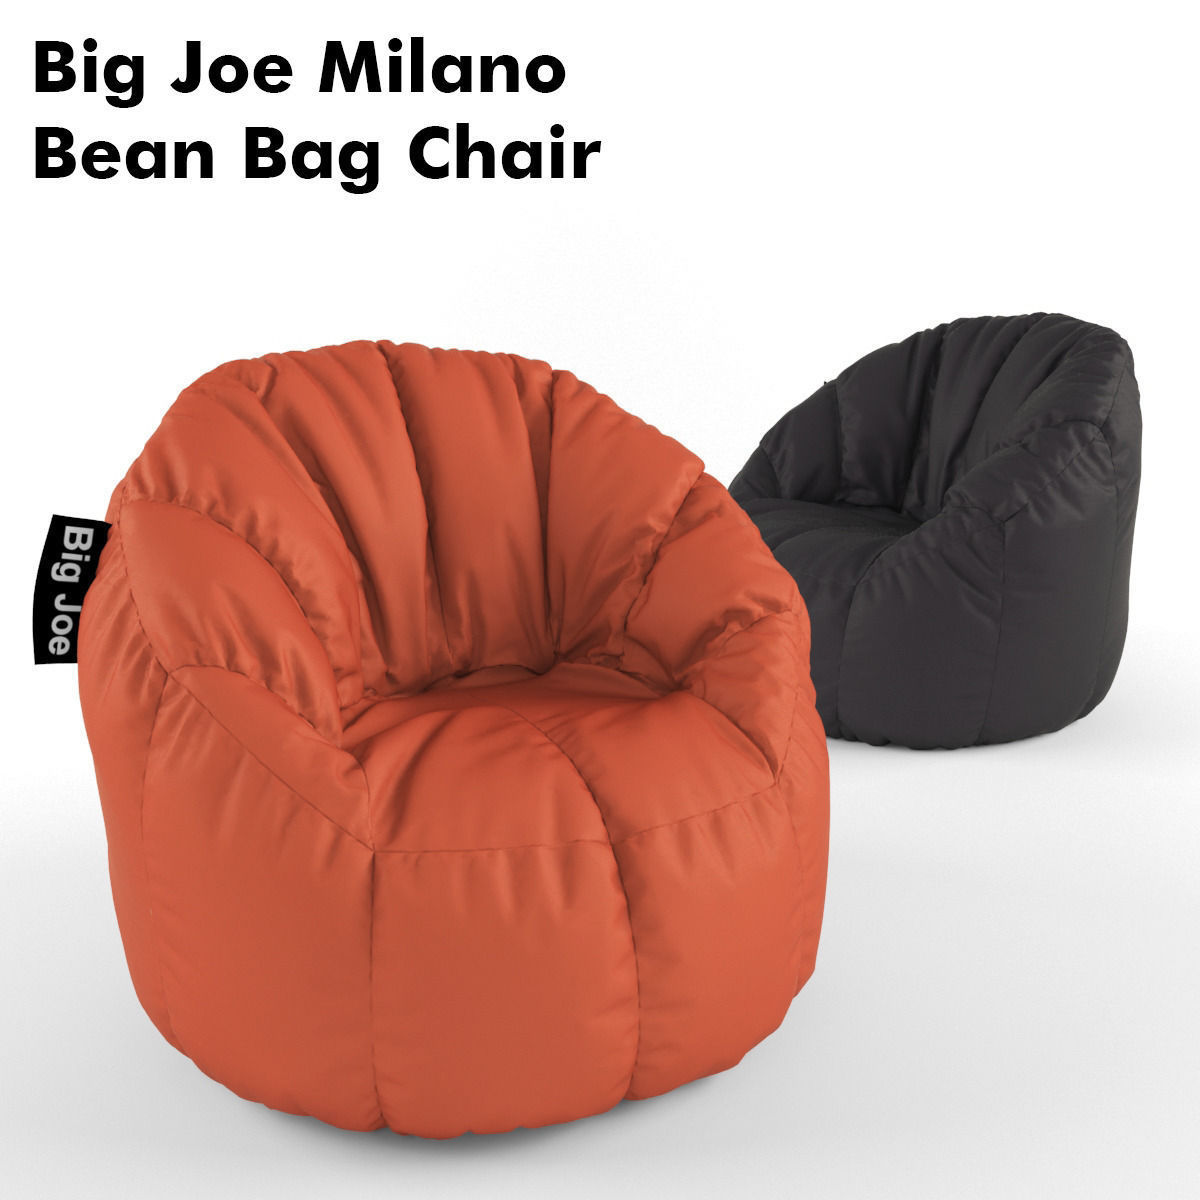 big joe milano bean bag chair chairs for babies 3d cgtrader model max fbx 1